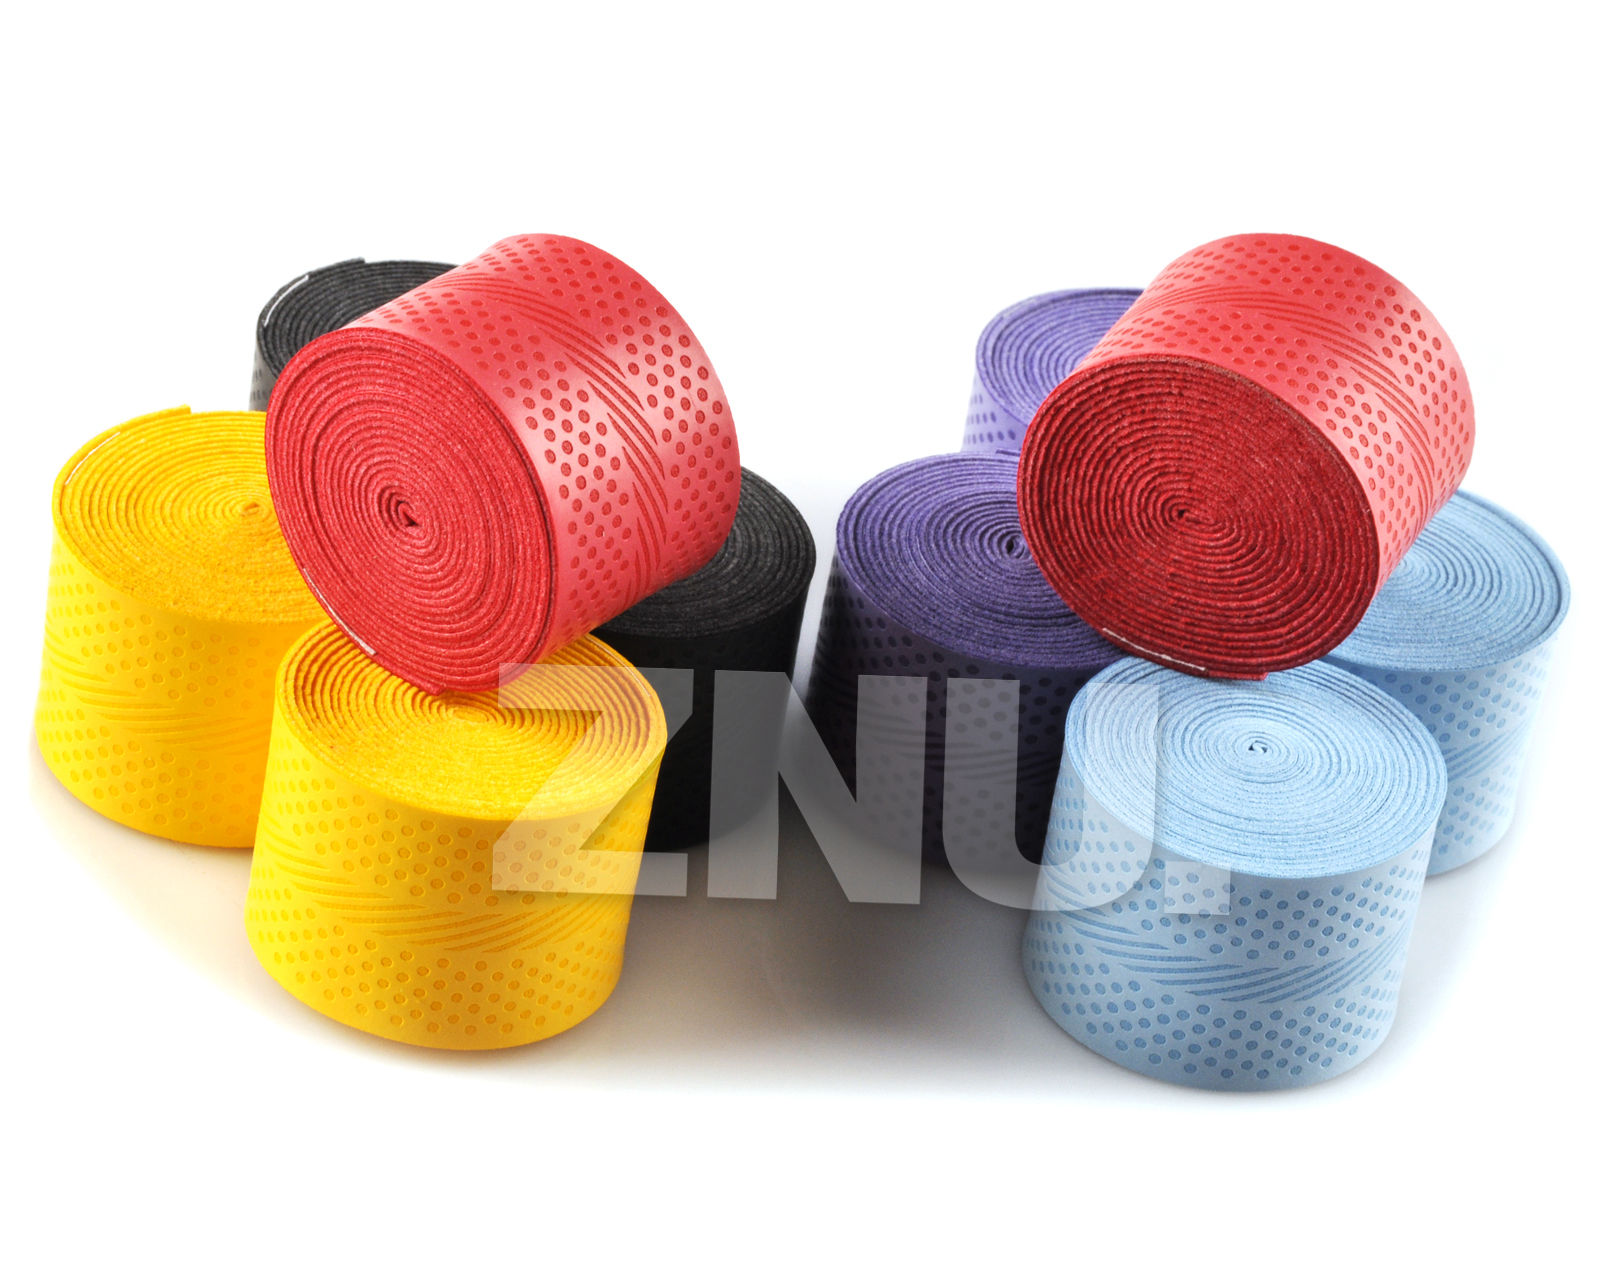 10PCS Sweatband Badminton Tennis Sports Over Grip Griffband Anti slip Overgrip Racket Outdoor Tape Multicolor Sweat D20 in Badminton Accessories Equipment from Sports Entertainment